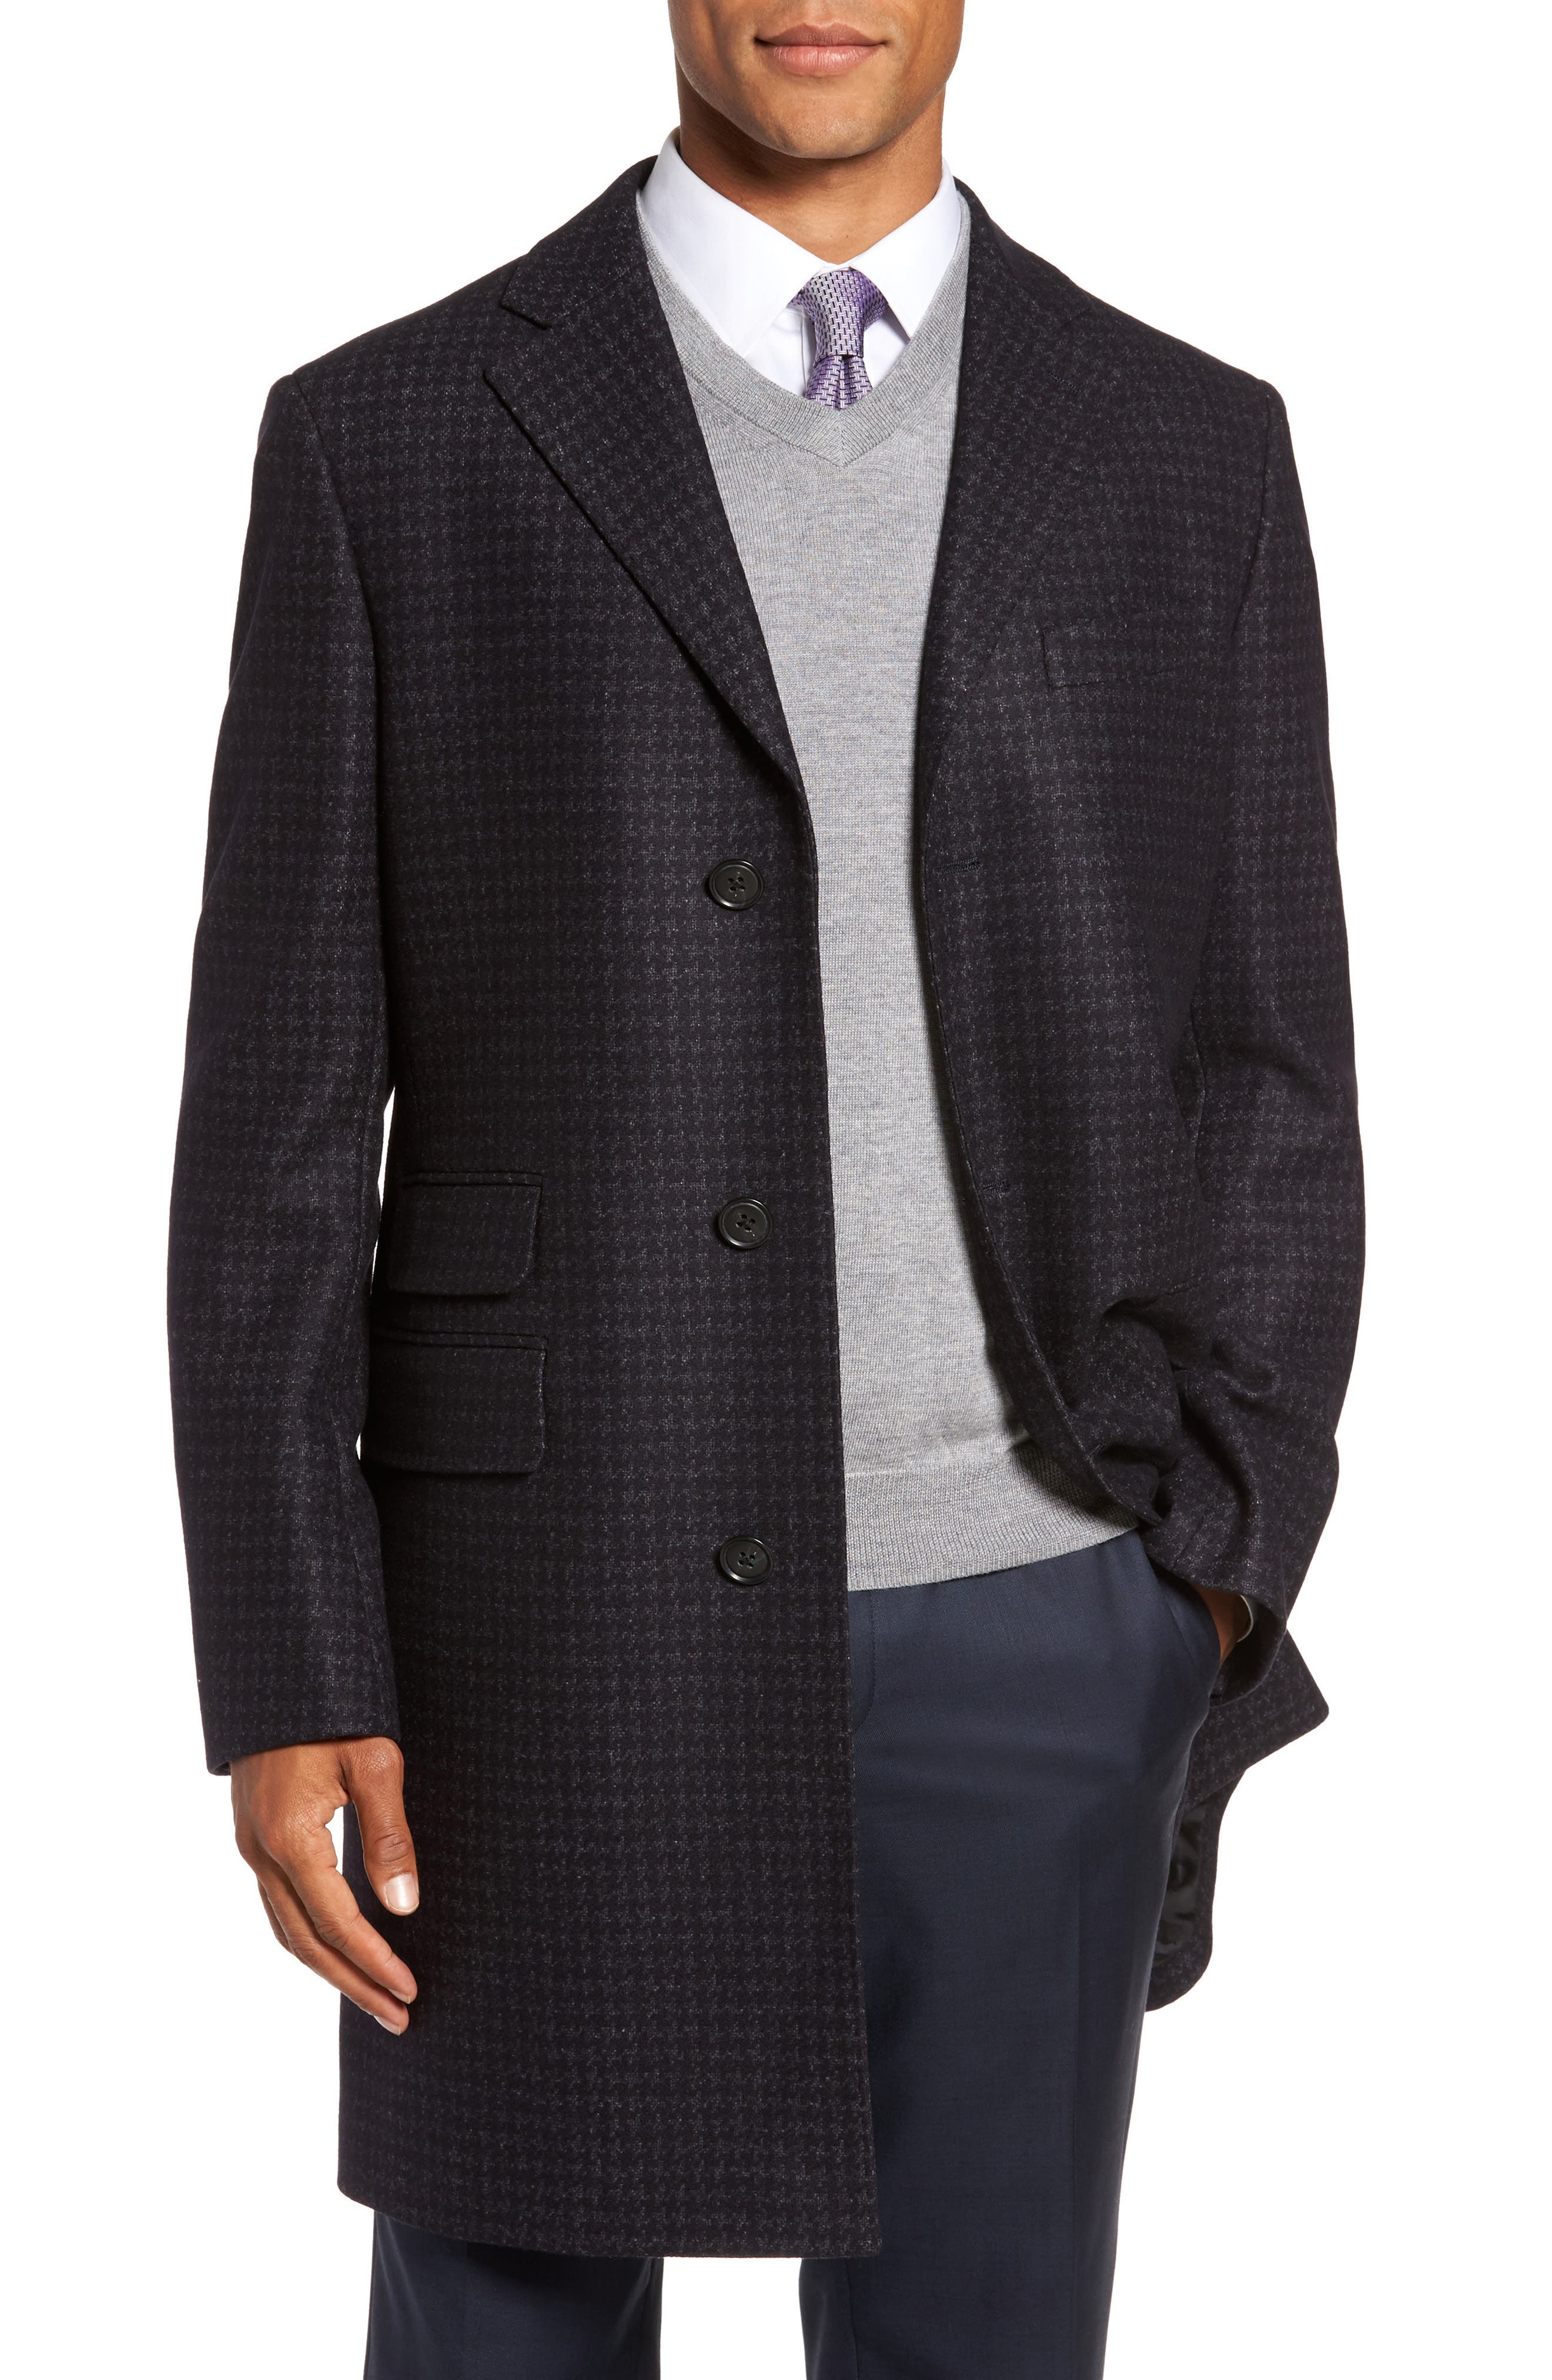 Jackson Houndstooth Wool Blend Overcoat,                         Main,                         color,